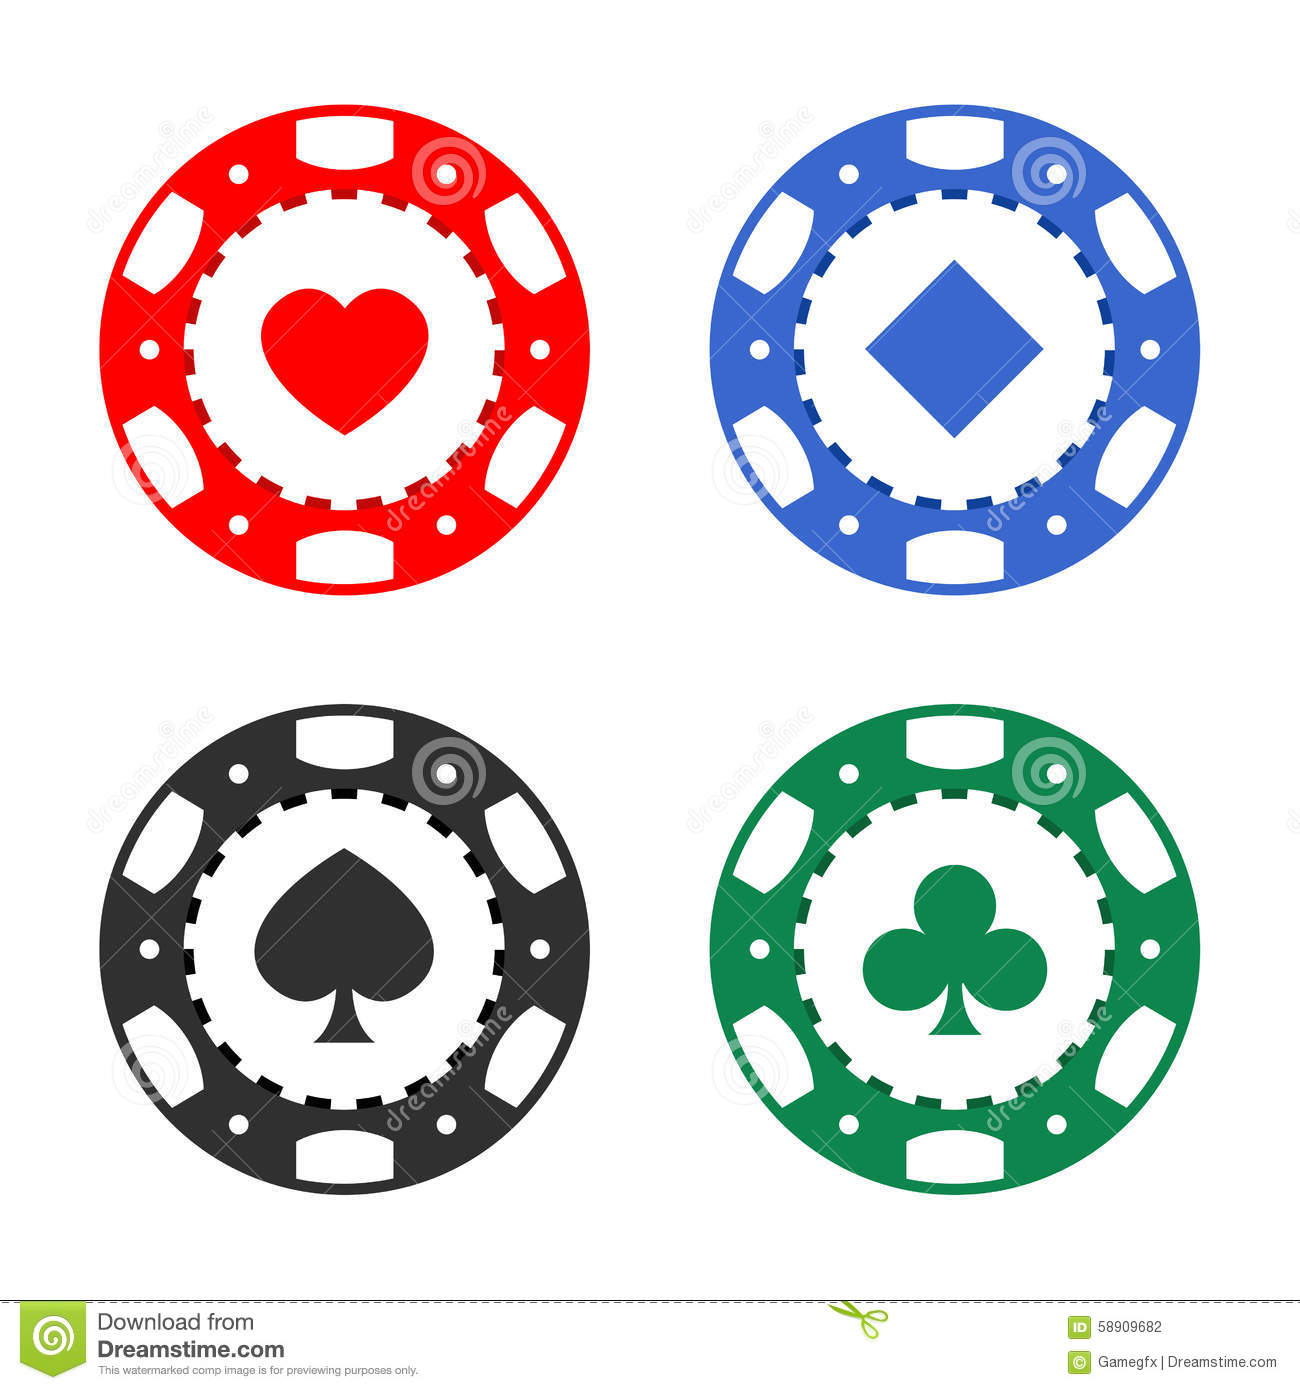 casino chip download